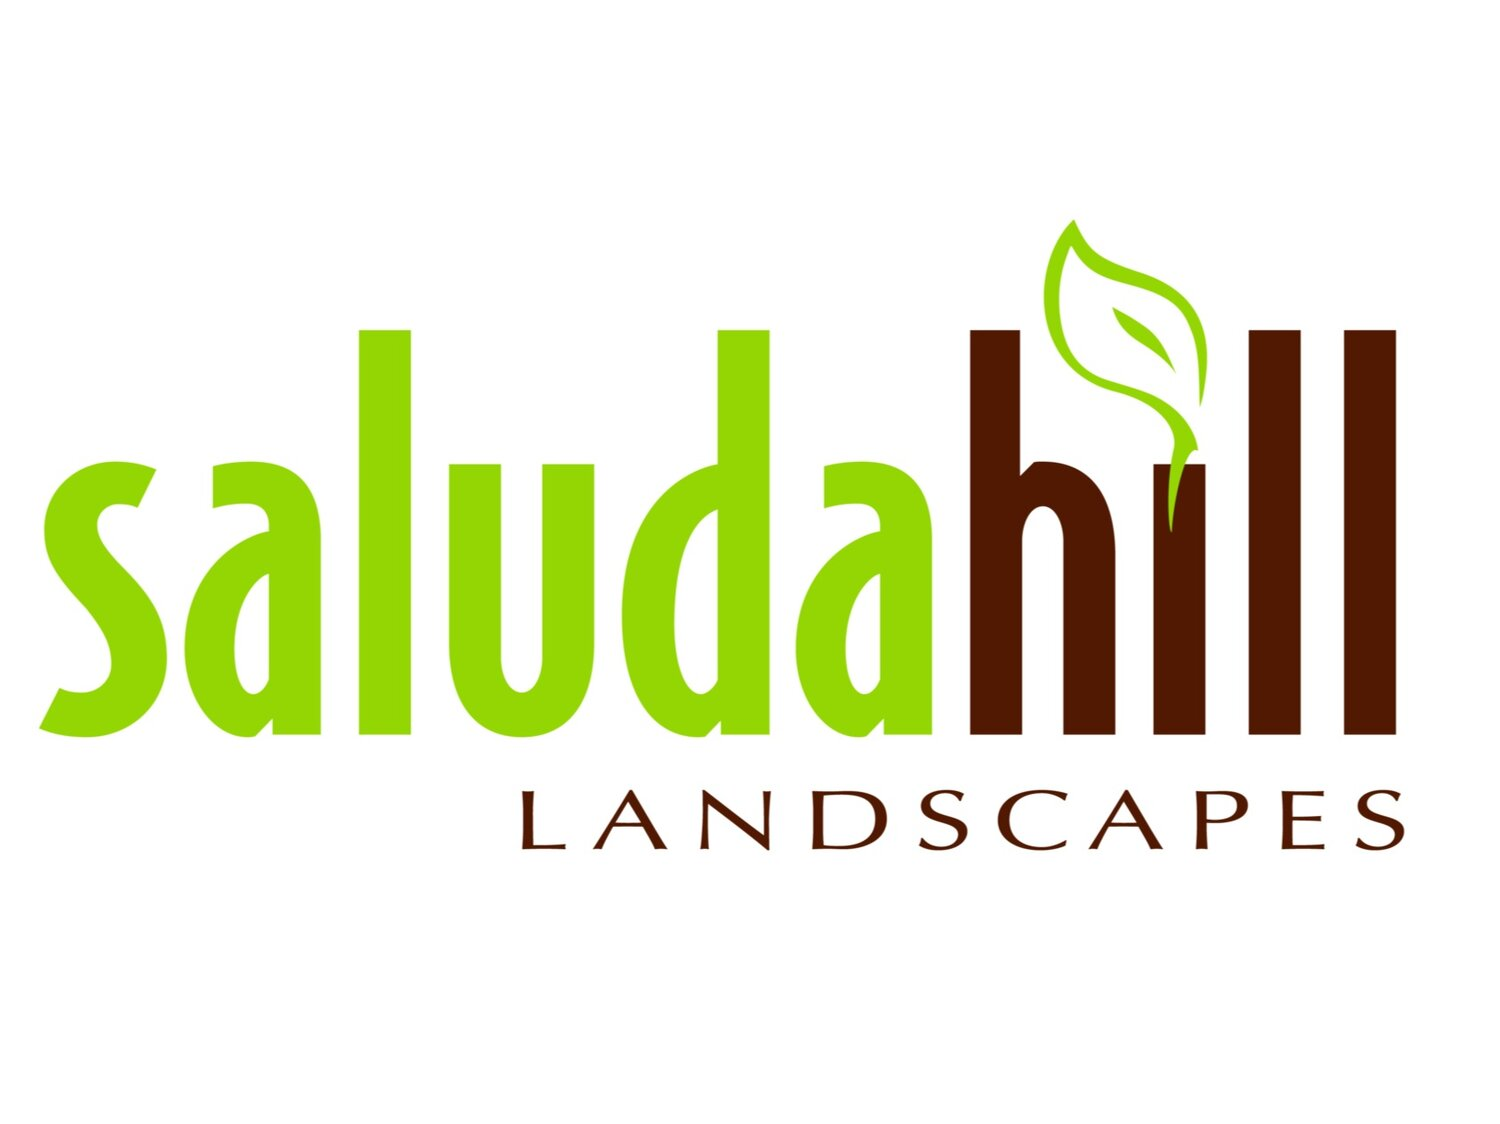 Award Winning Landscaping Serving Lexington Columbia And Surrounding Areas Since 1991